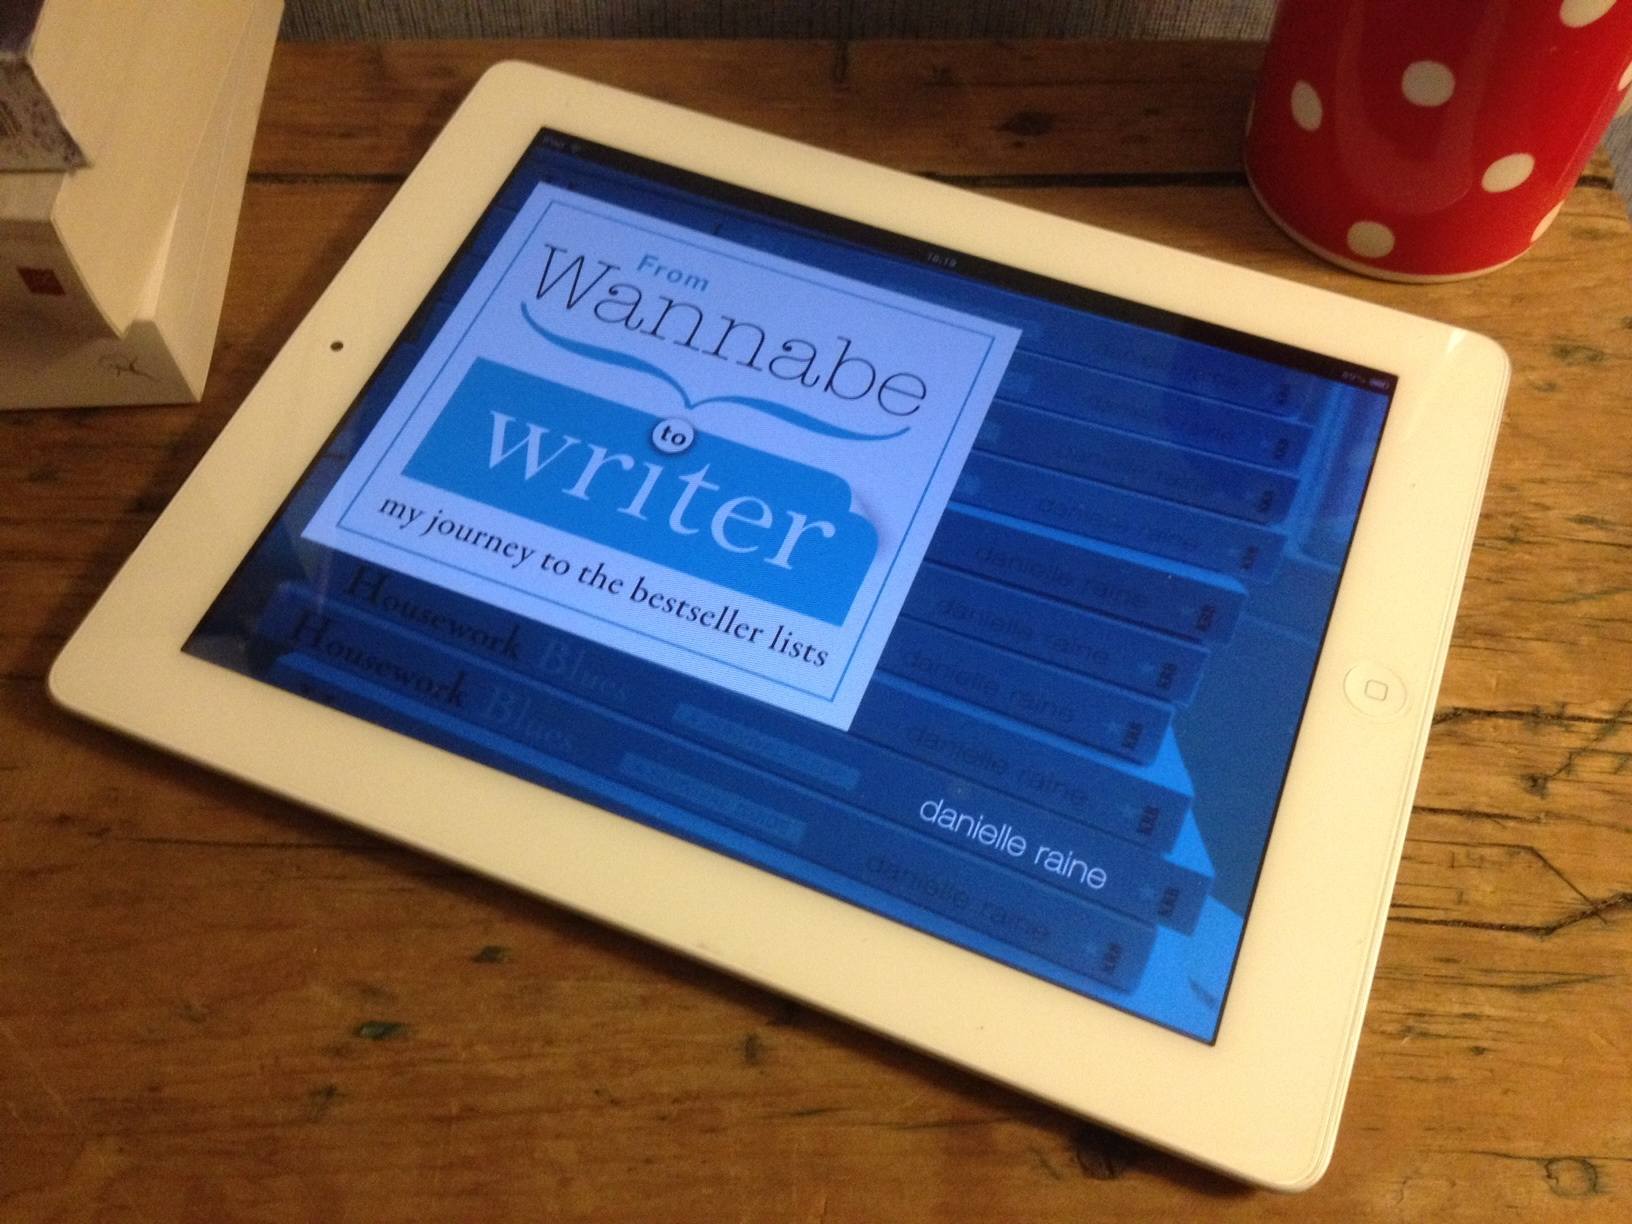 ipad cuppa wannabe writer ebook